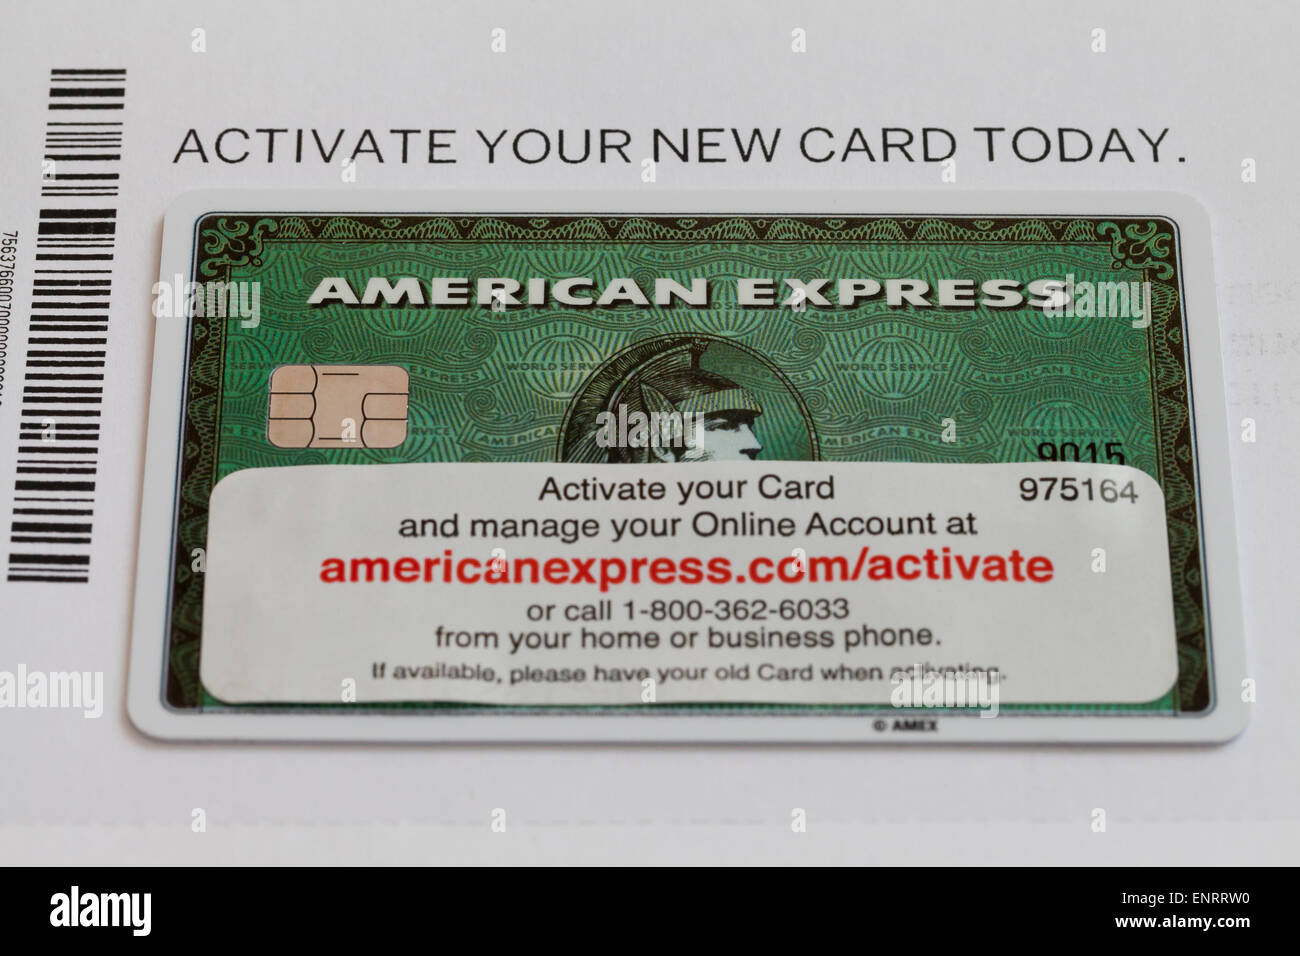 American Express Credit Card Stock Photos & American Express Credit ...